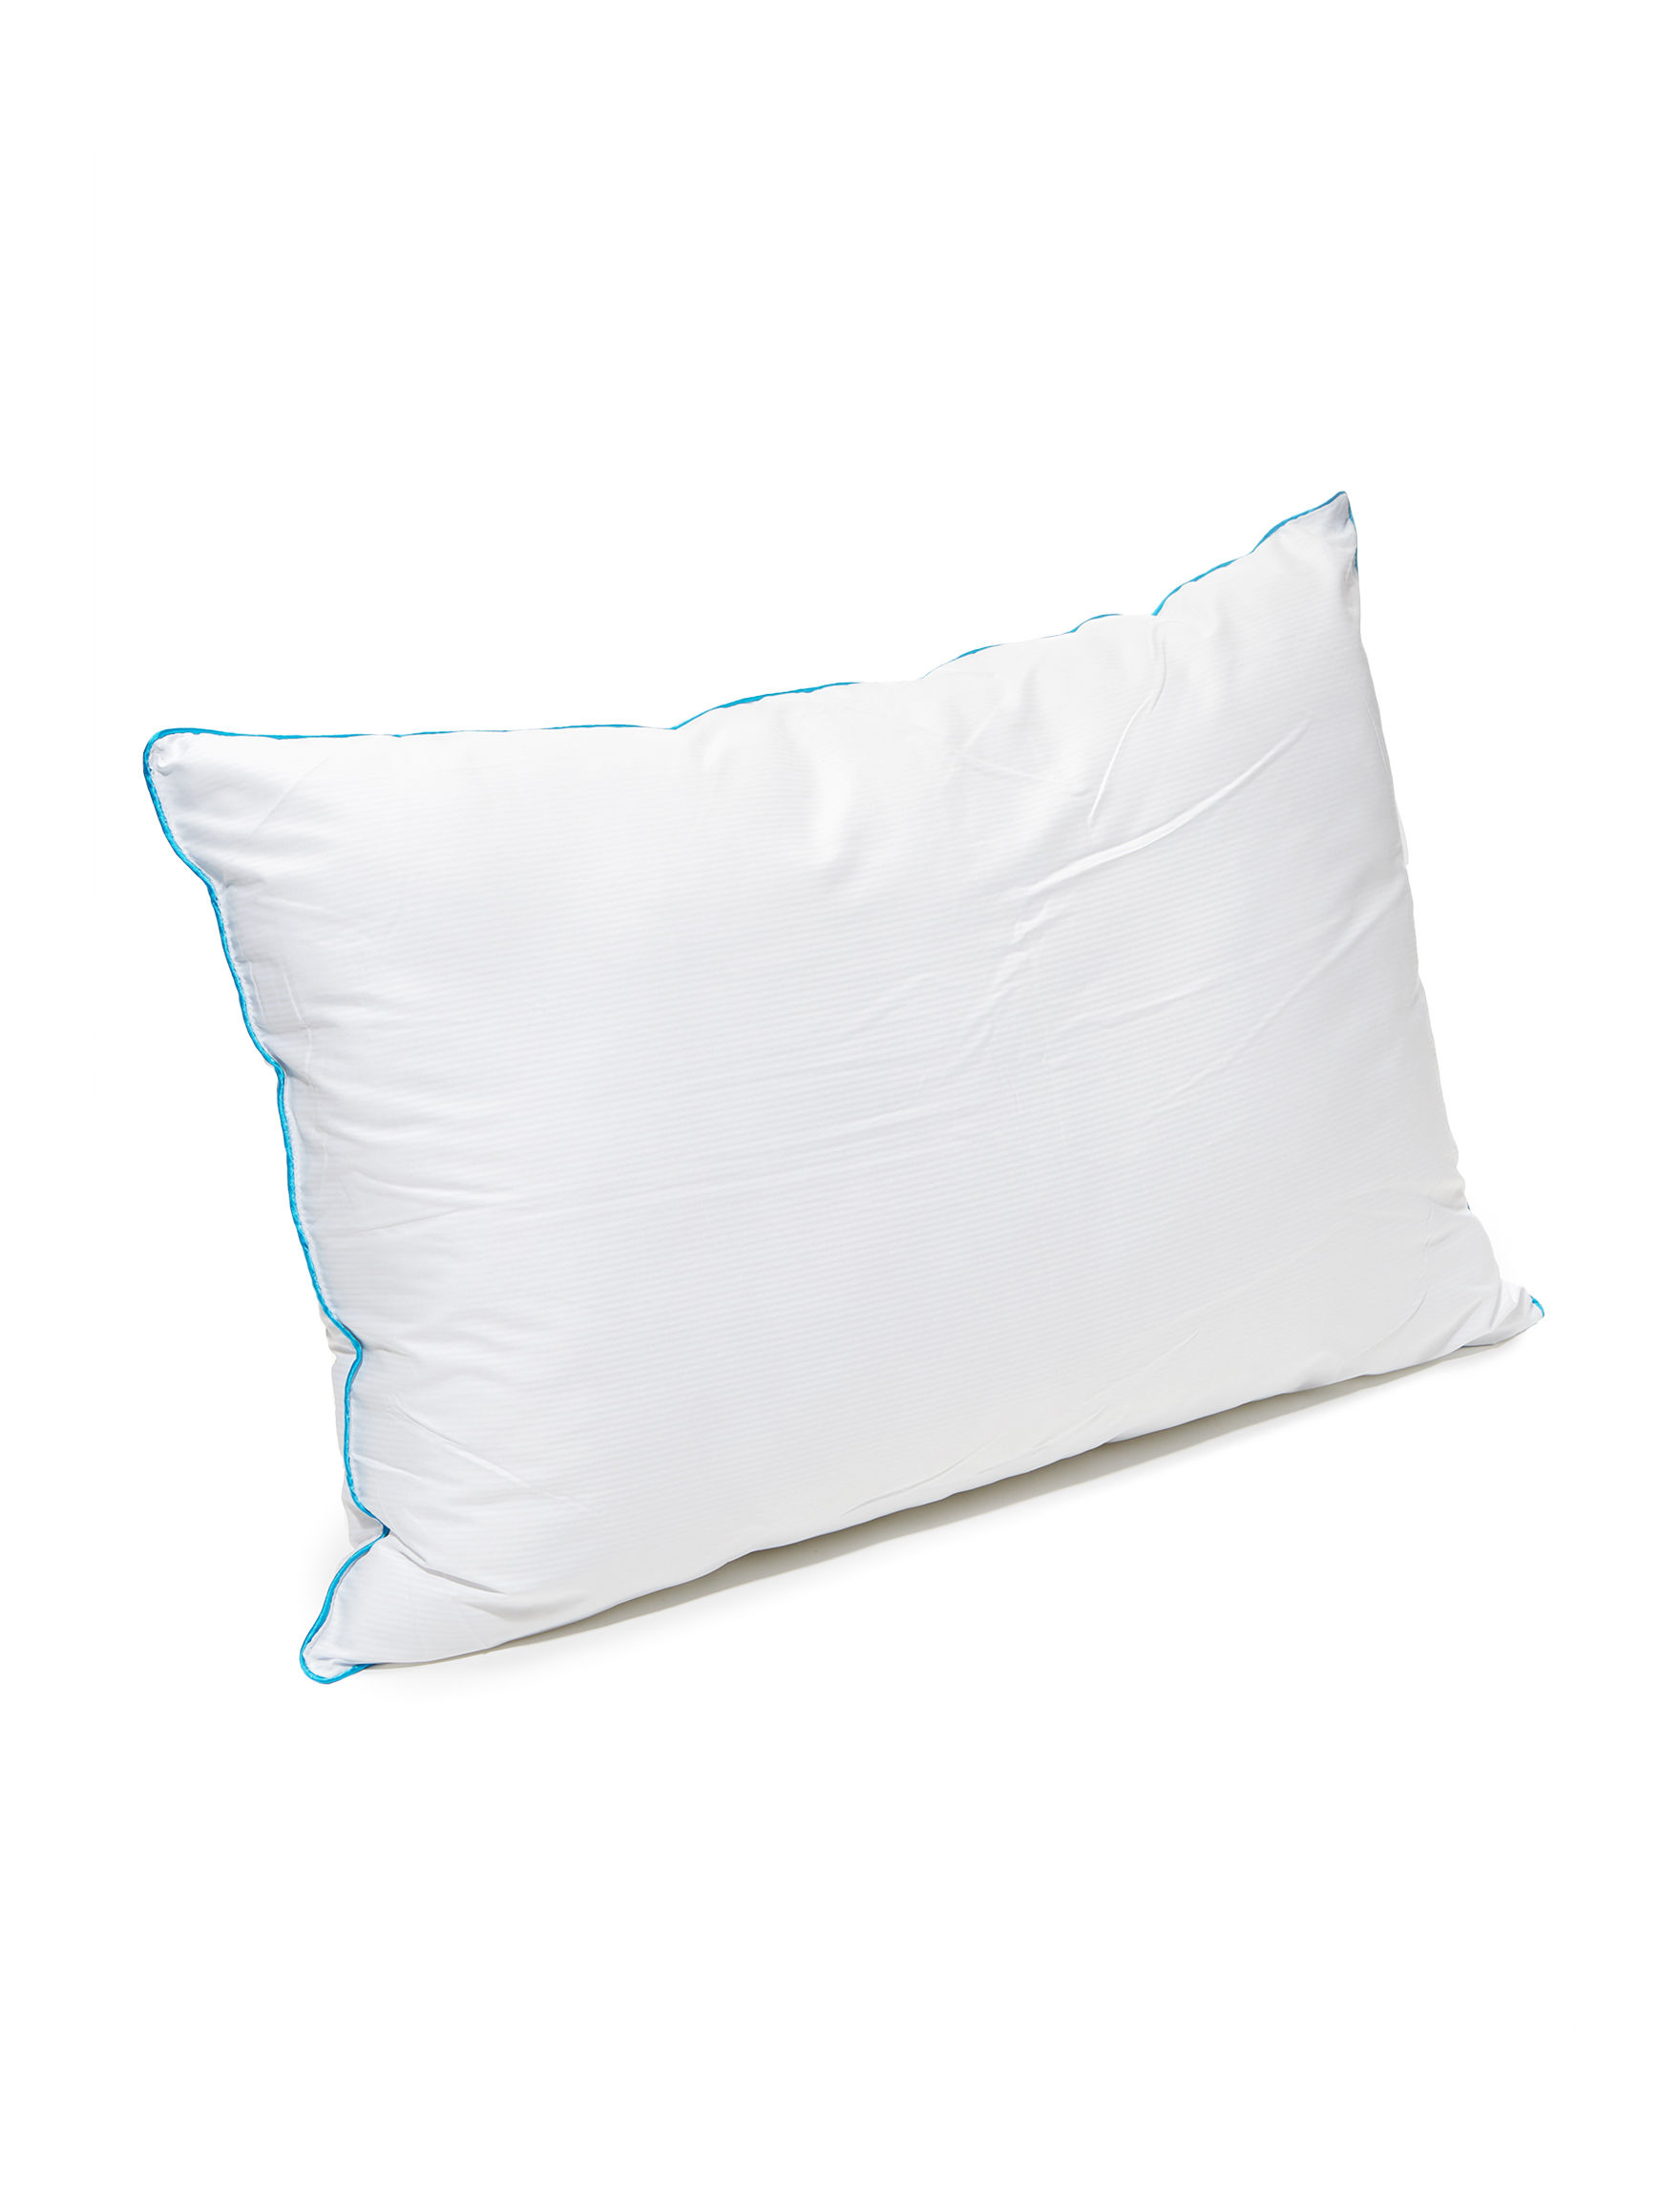 Springmaid White Bed Pillows